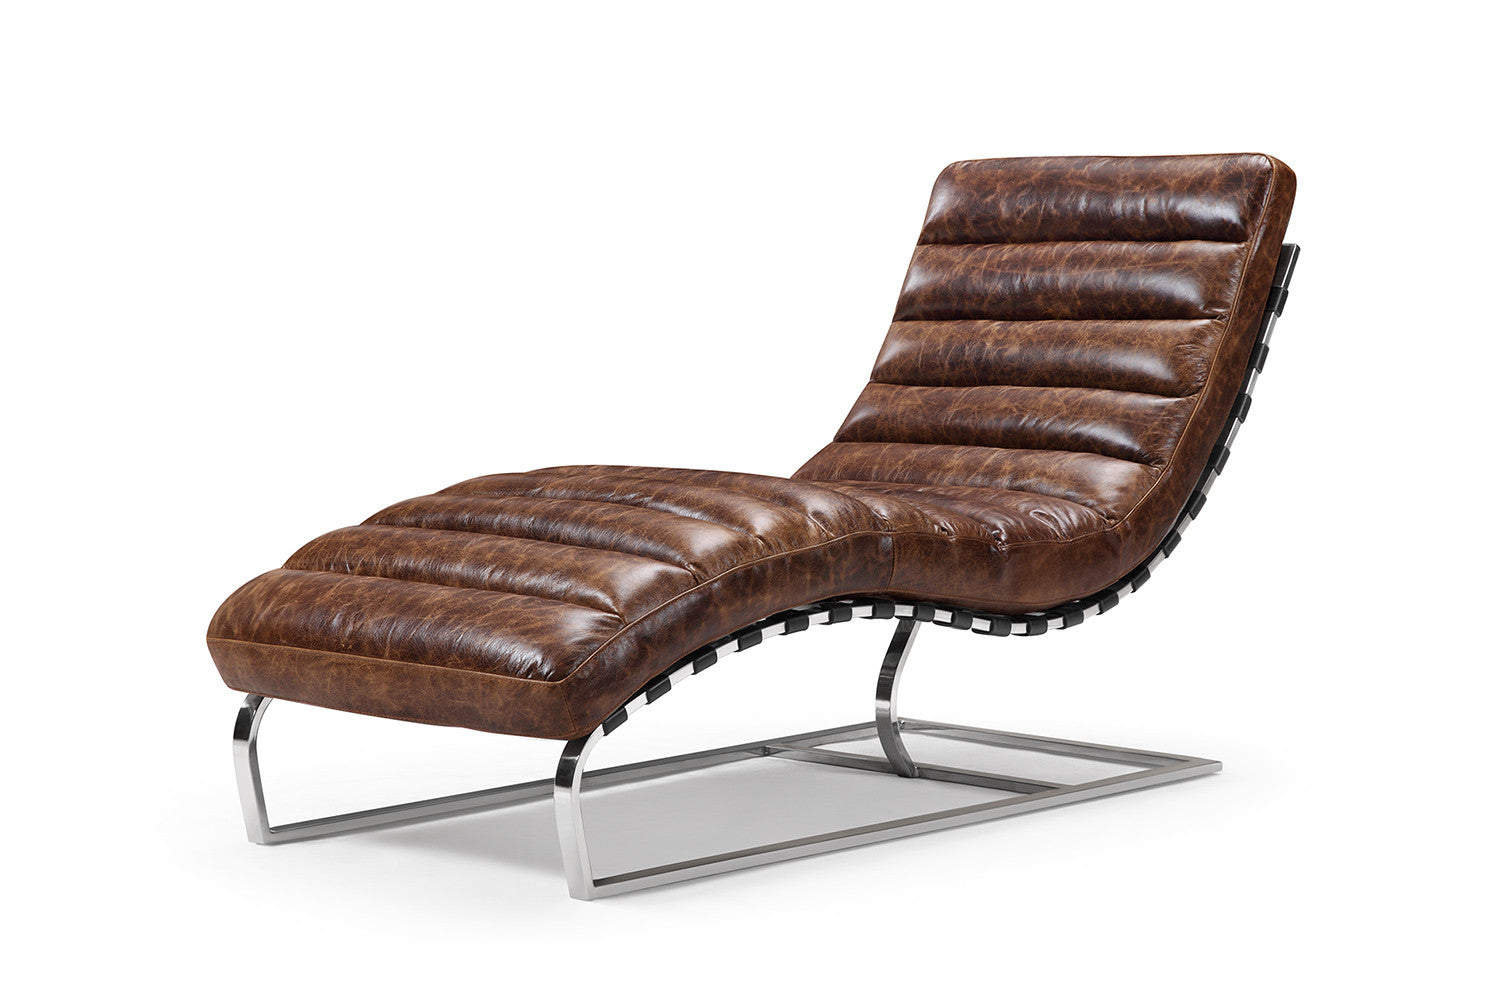 The leather chaise lounge rose and moore for Maison du monde chaise